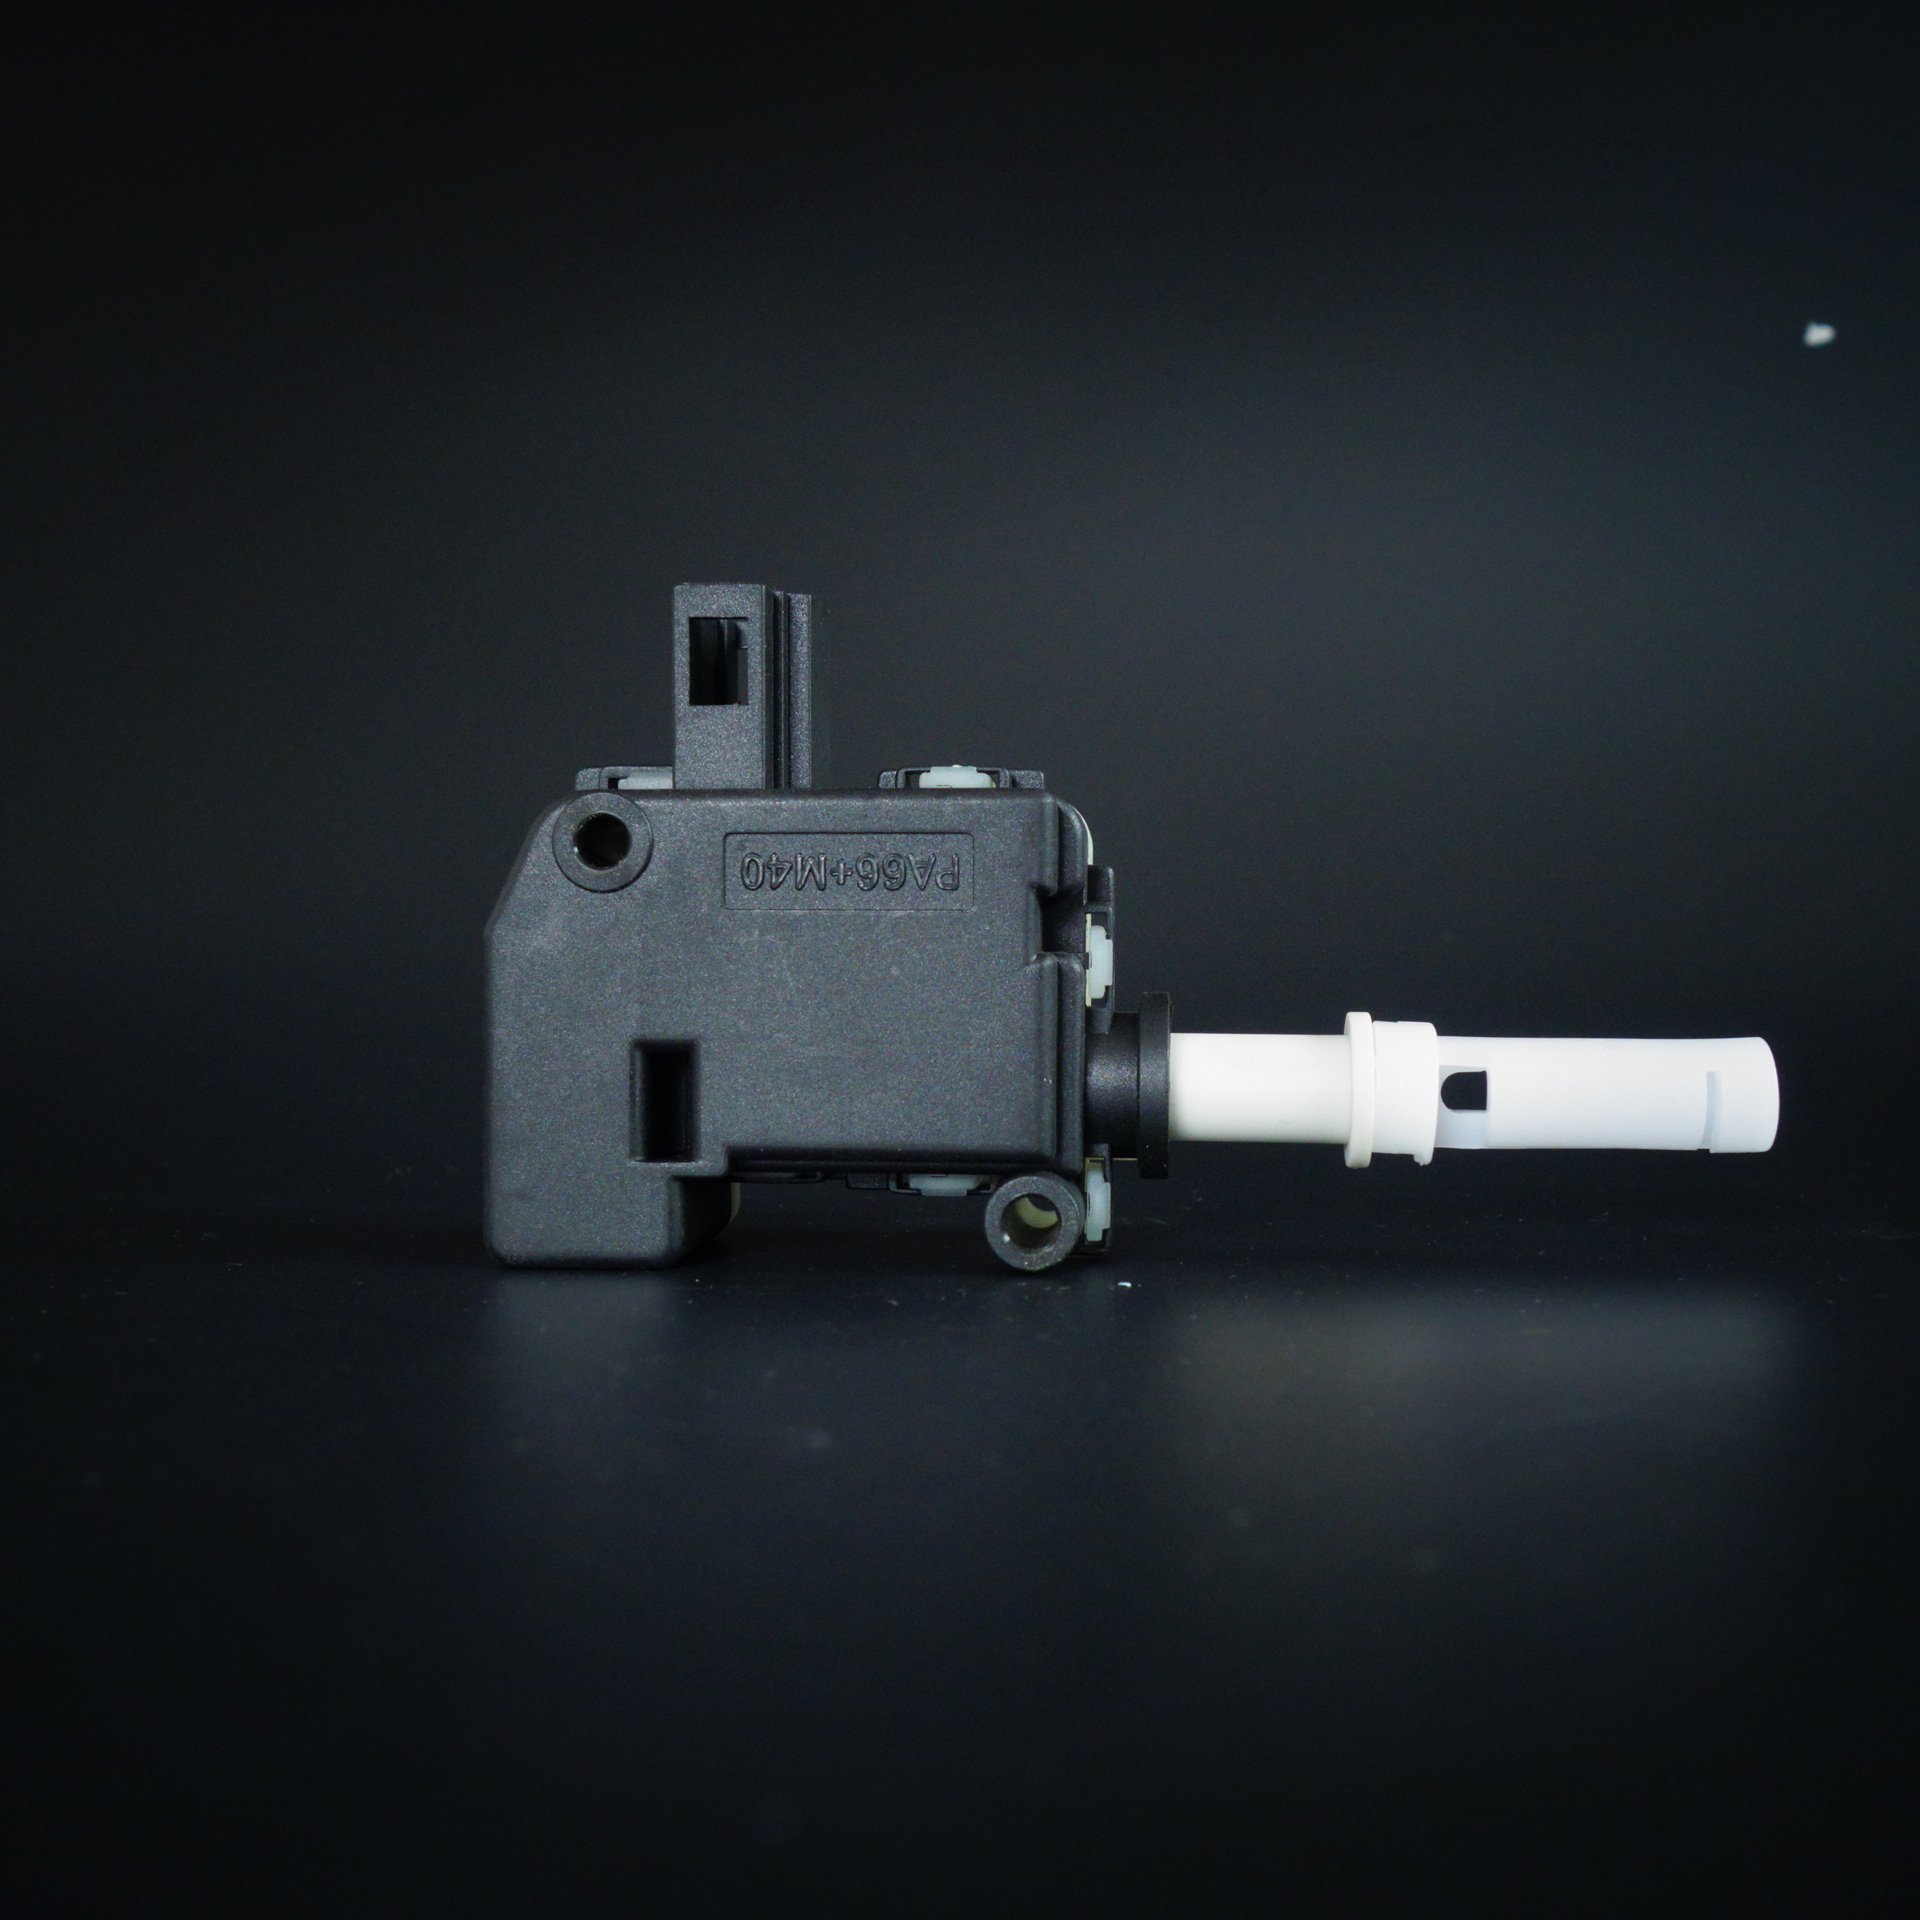 New Tailgate Actuator Central Locking Motor Vw Passat Caddy Touareg 3B0 959 781D by ElifeParts